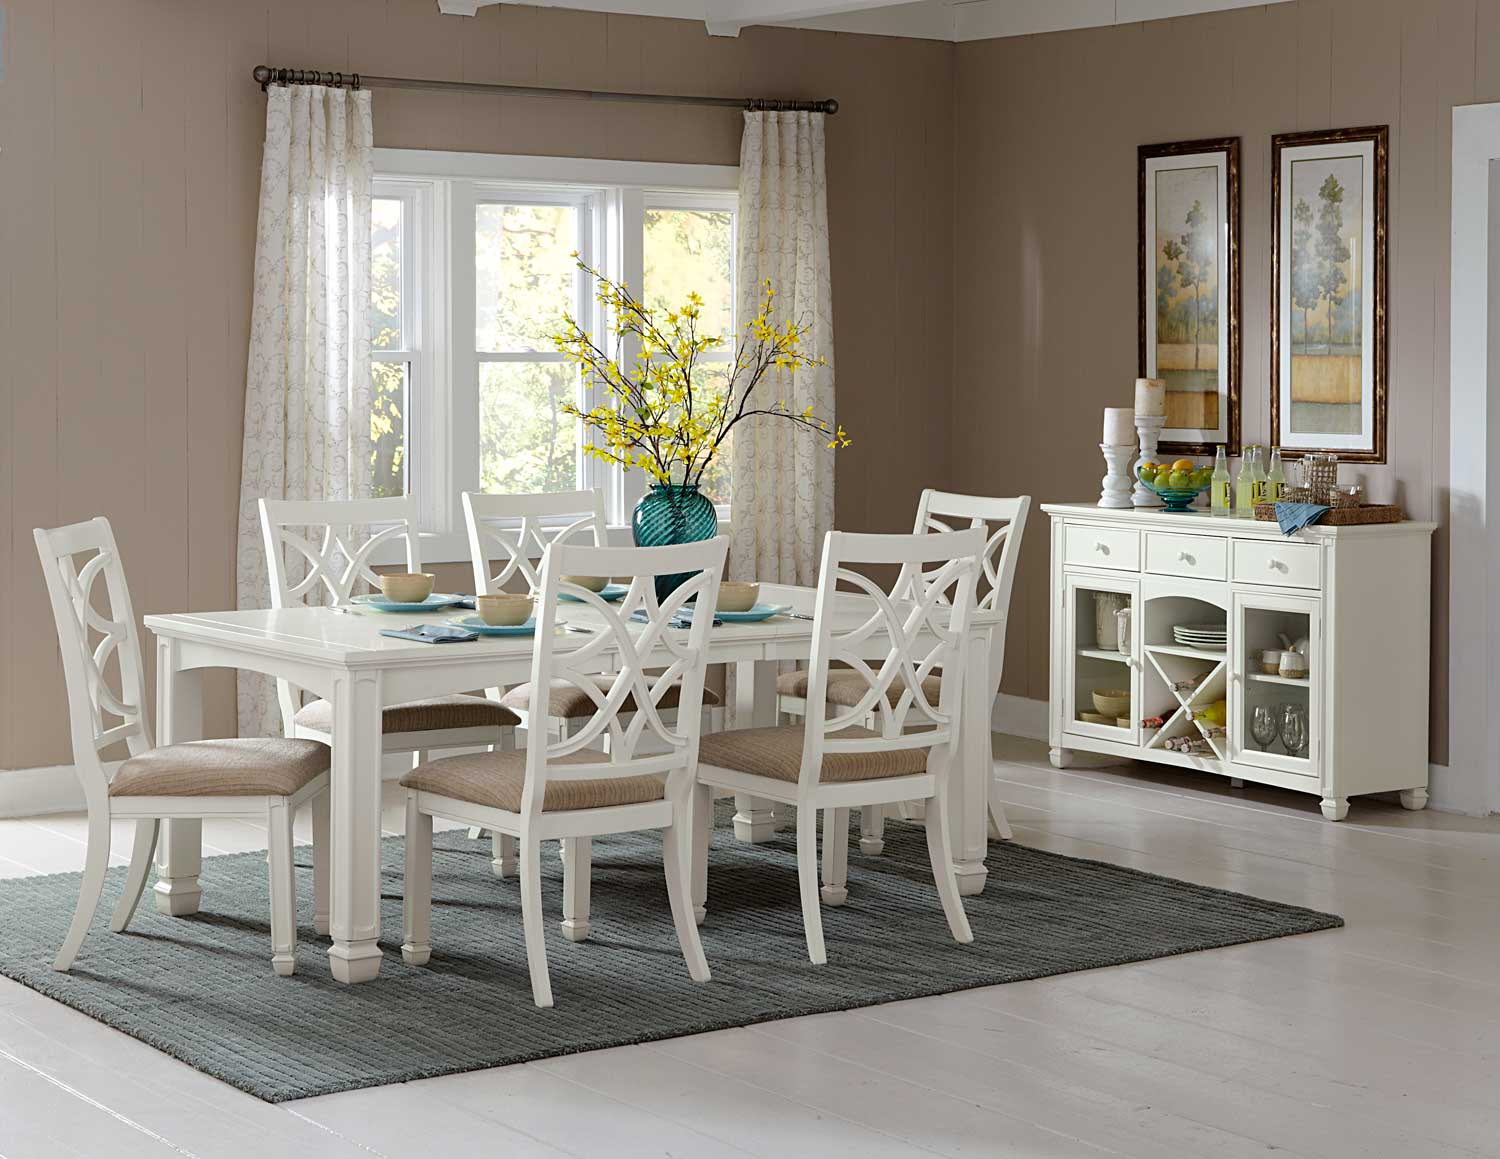 Homelegance Kentucky Park Dining Set - White